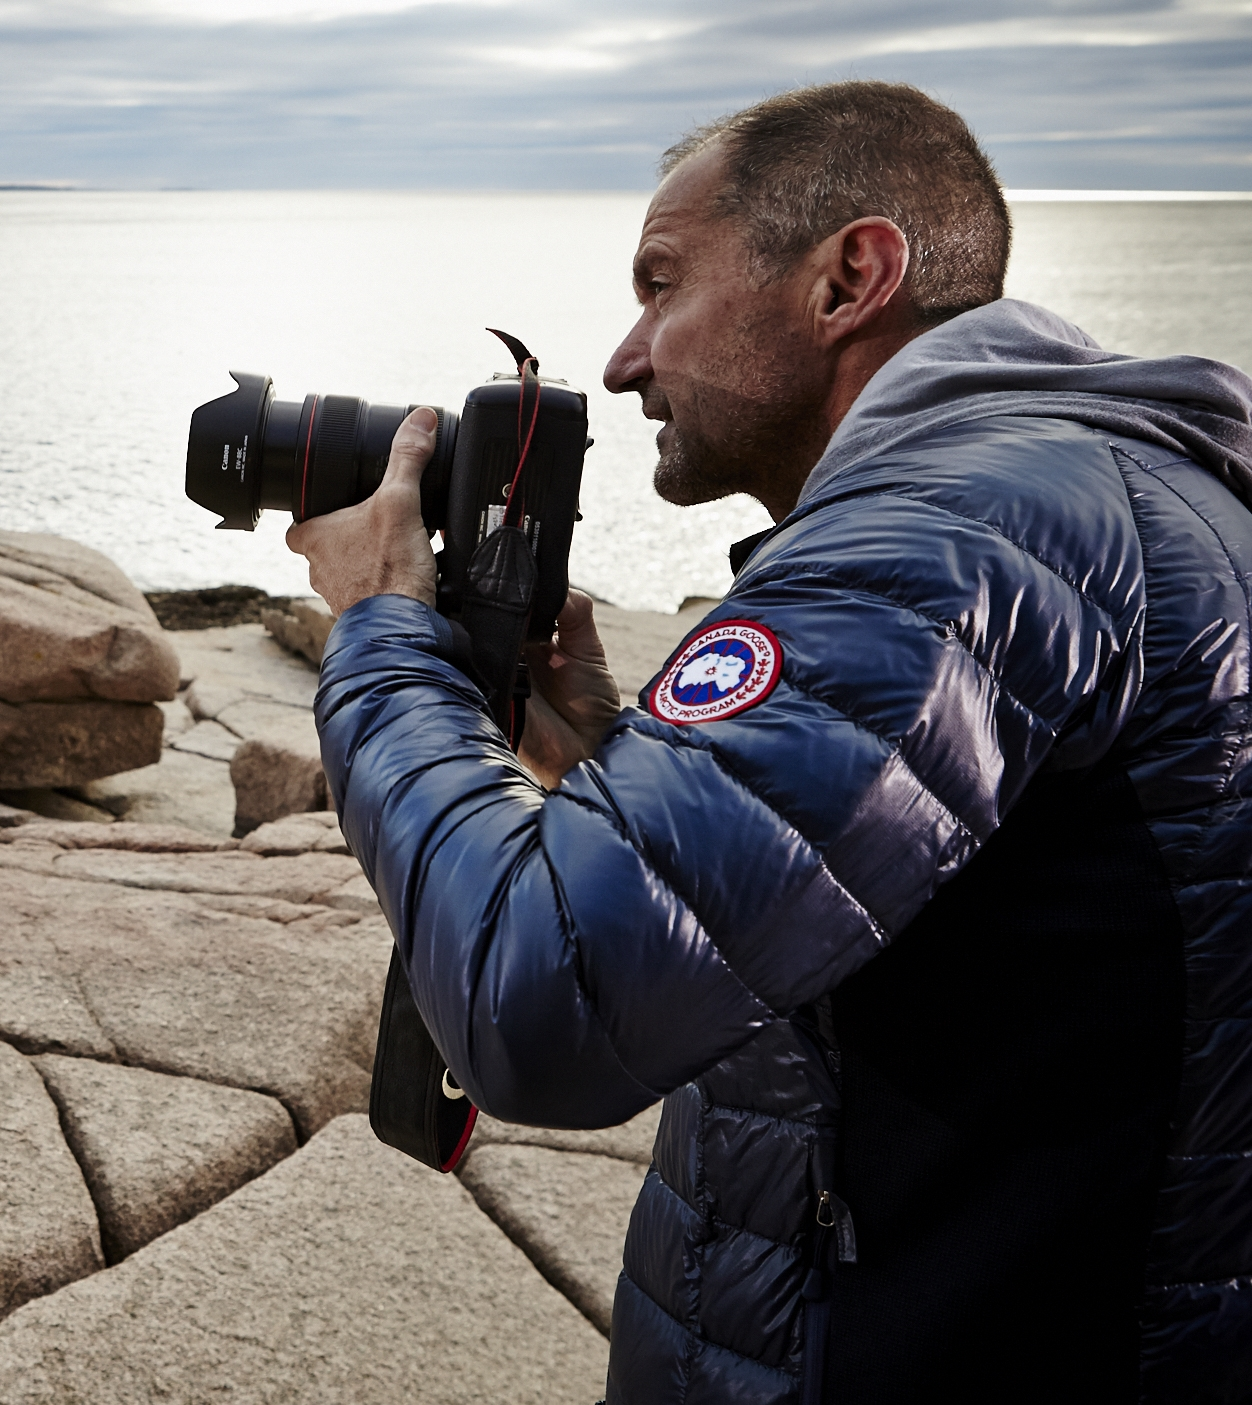 Philip North-Coombes on location for Sebago in Maine USA.